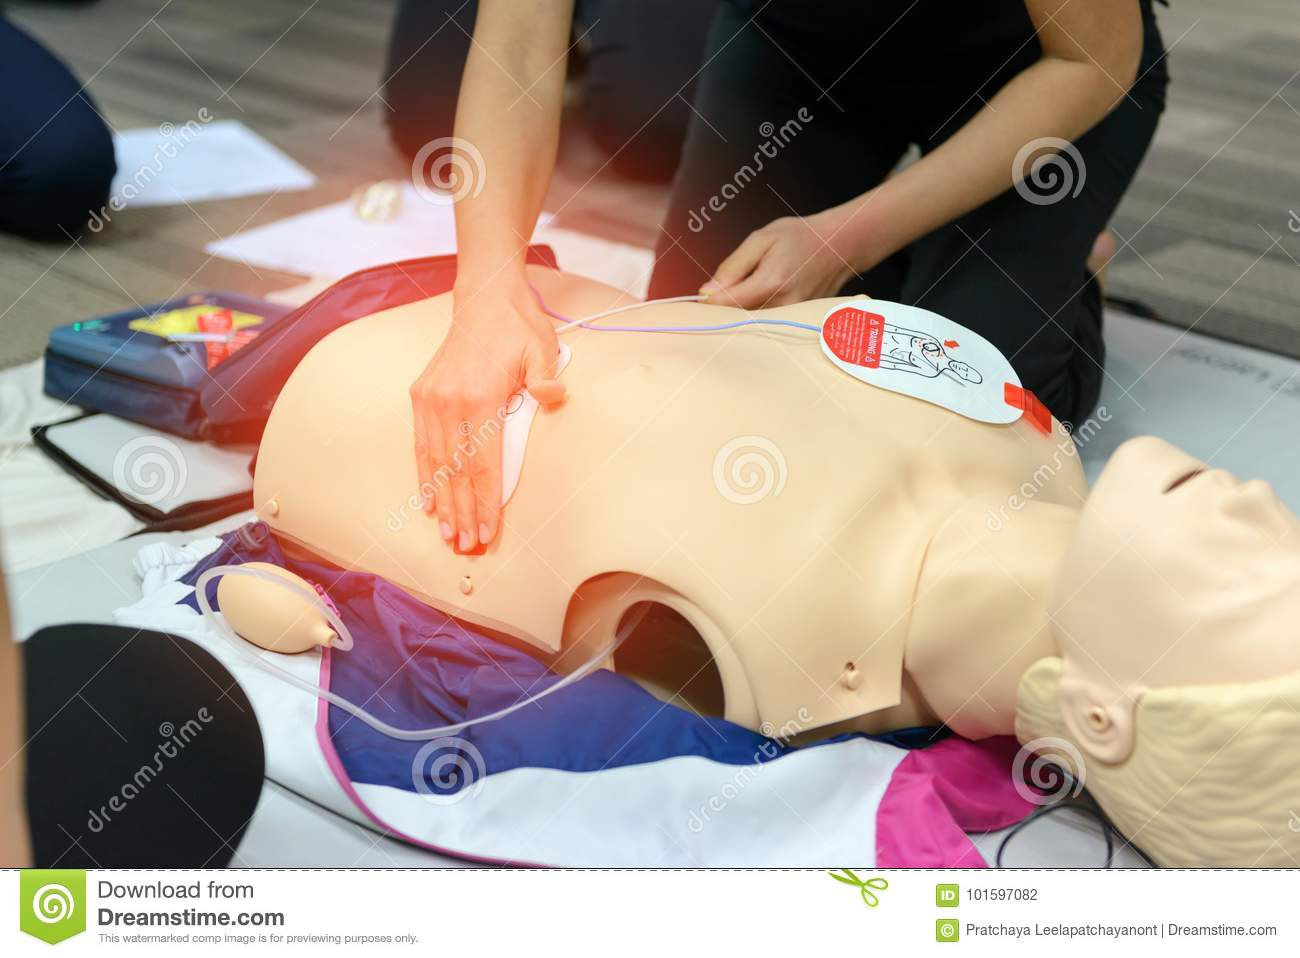 Recertification - Level C CPR and AED